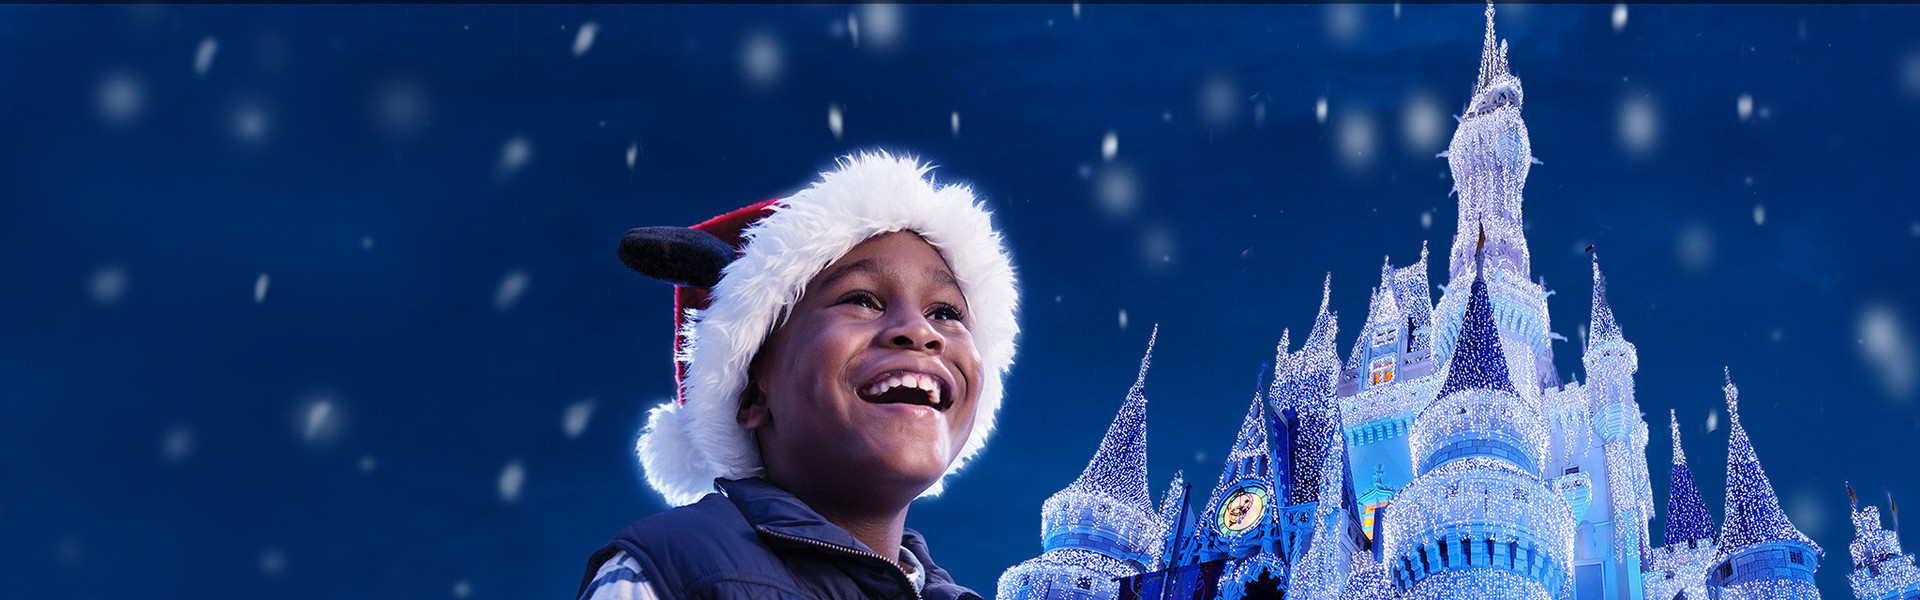 Hotel For Mickey's Very Merry Christmas Party - Child in front of Cinderella's Castle